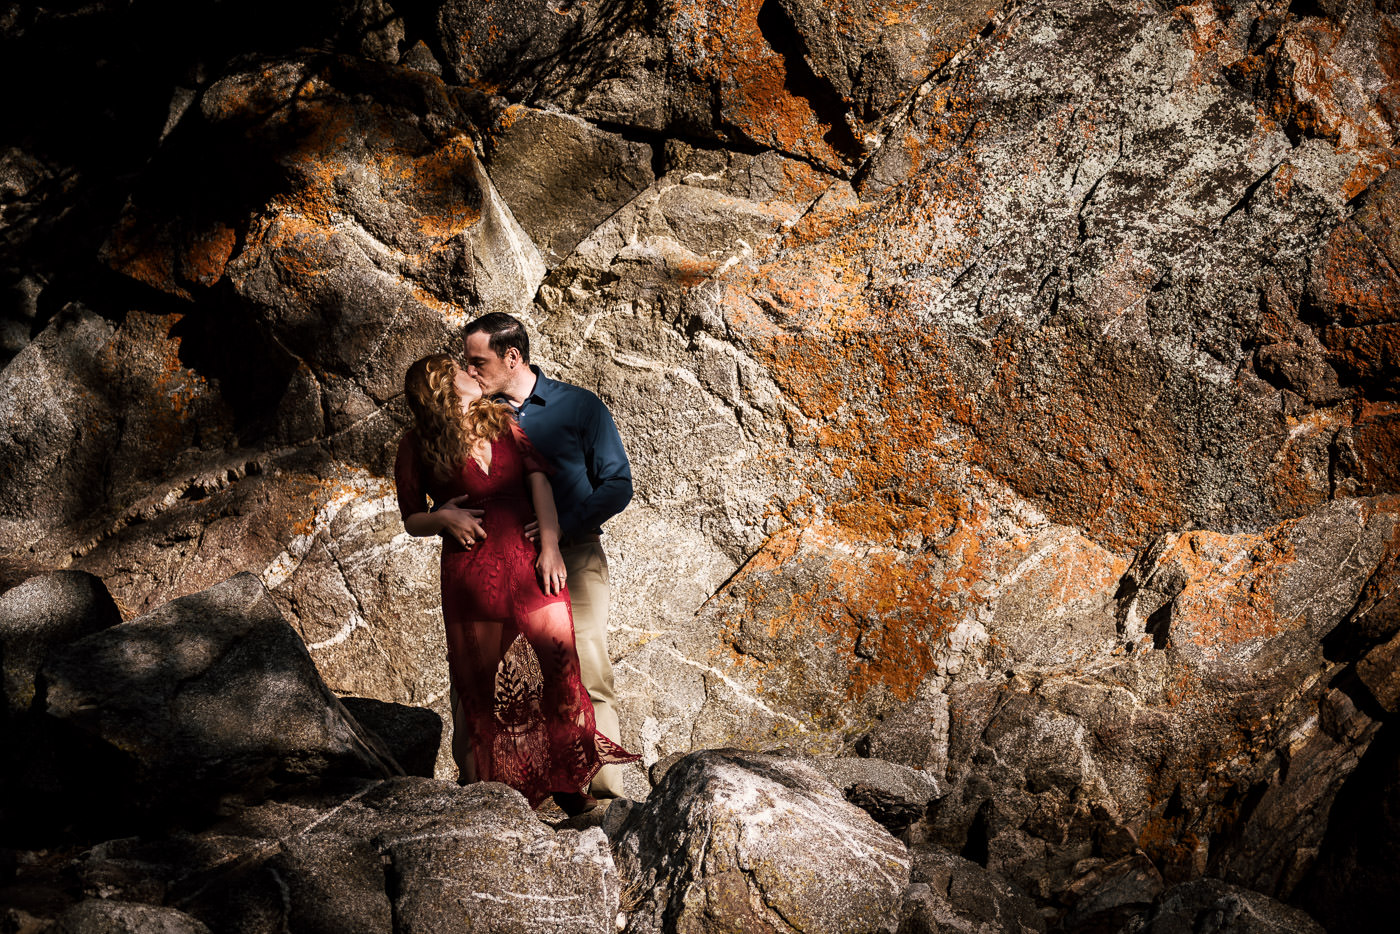 Tender kiss between these two lovebirds in the mountains of southern California.